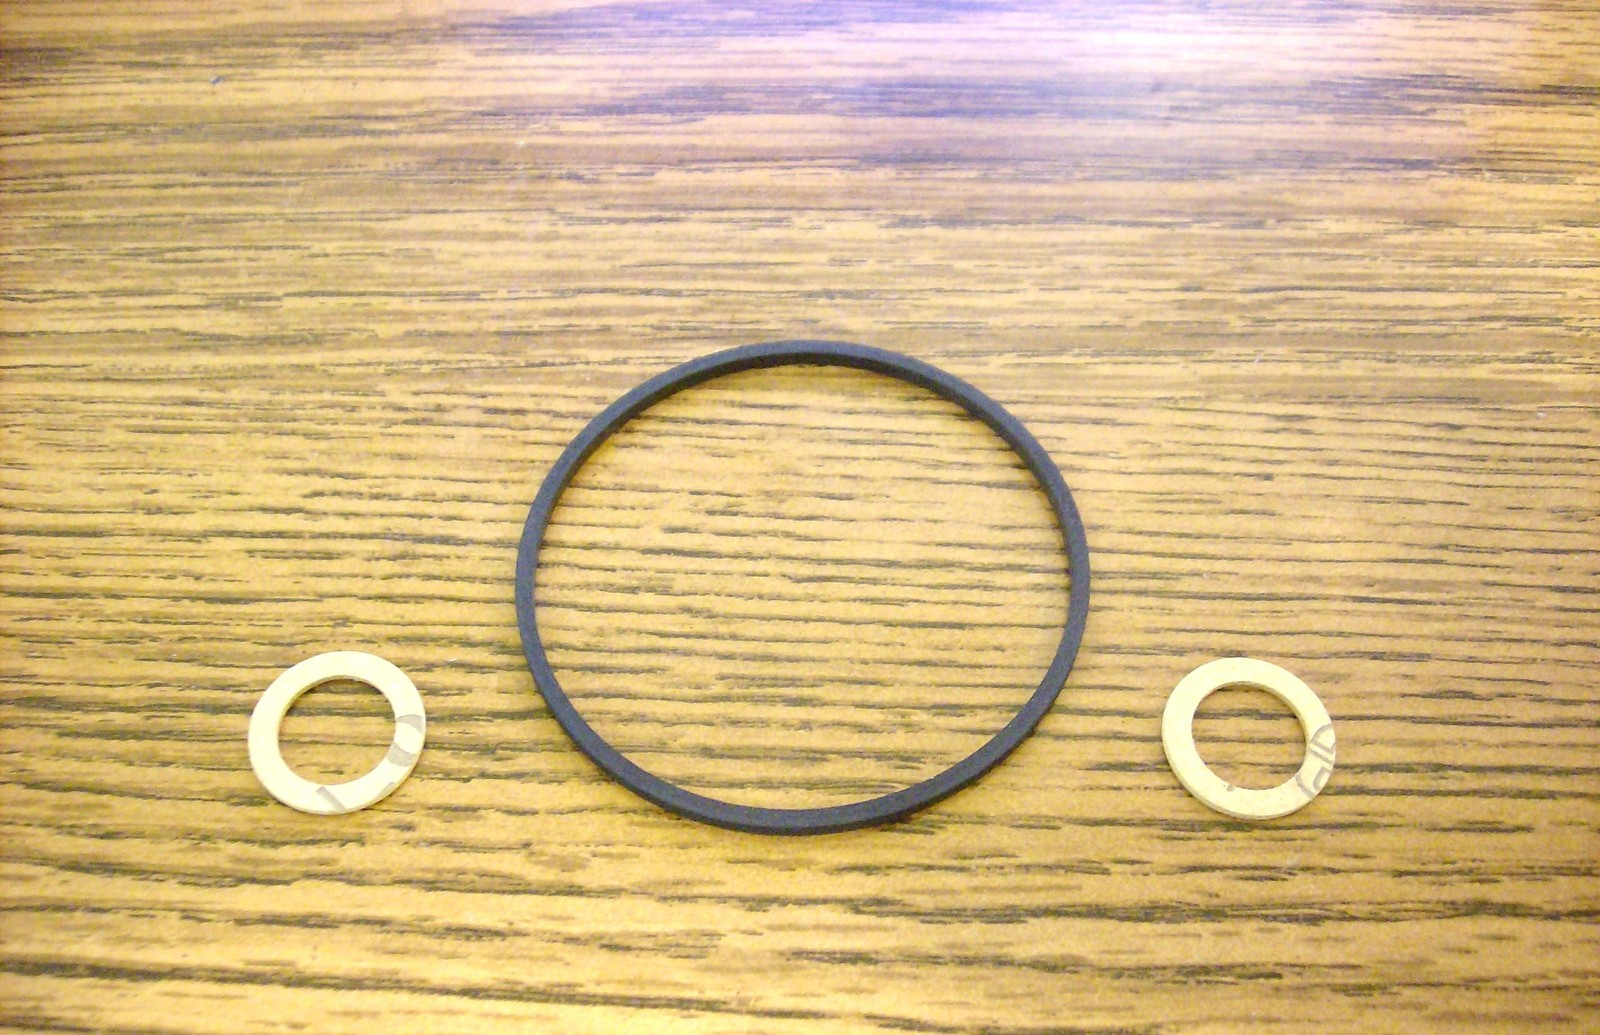 Carb carburetor gasket set for Briggs and Stratton and Lawnboy 683778